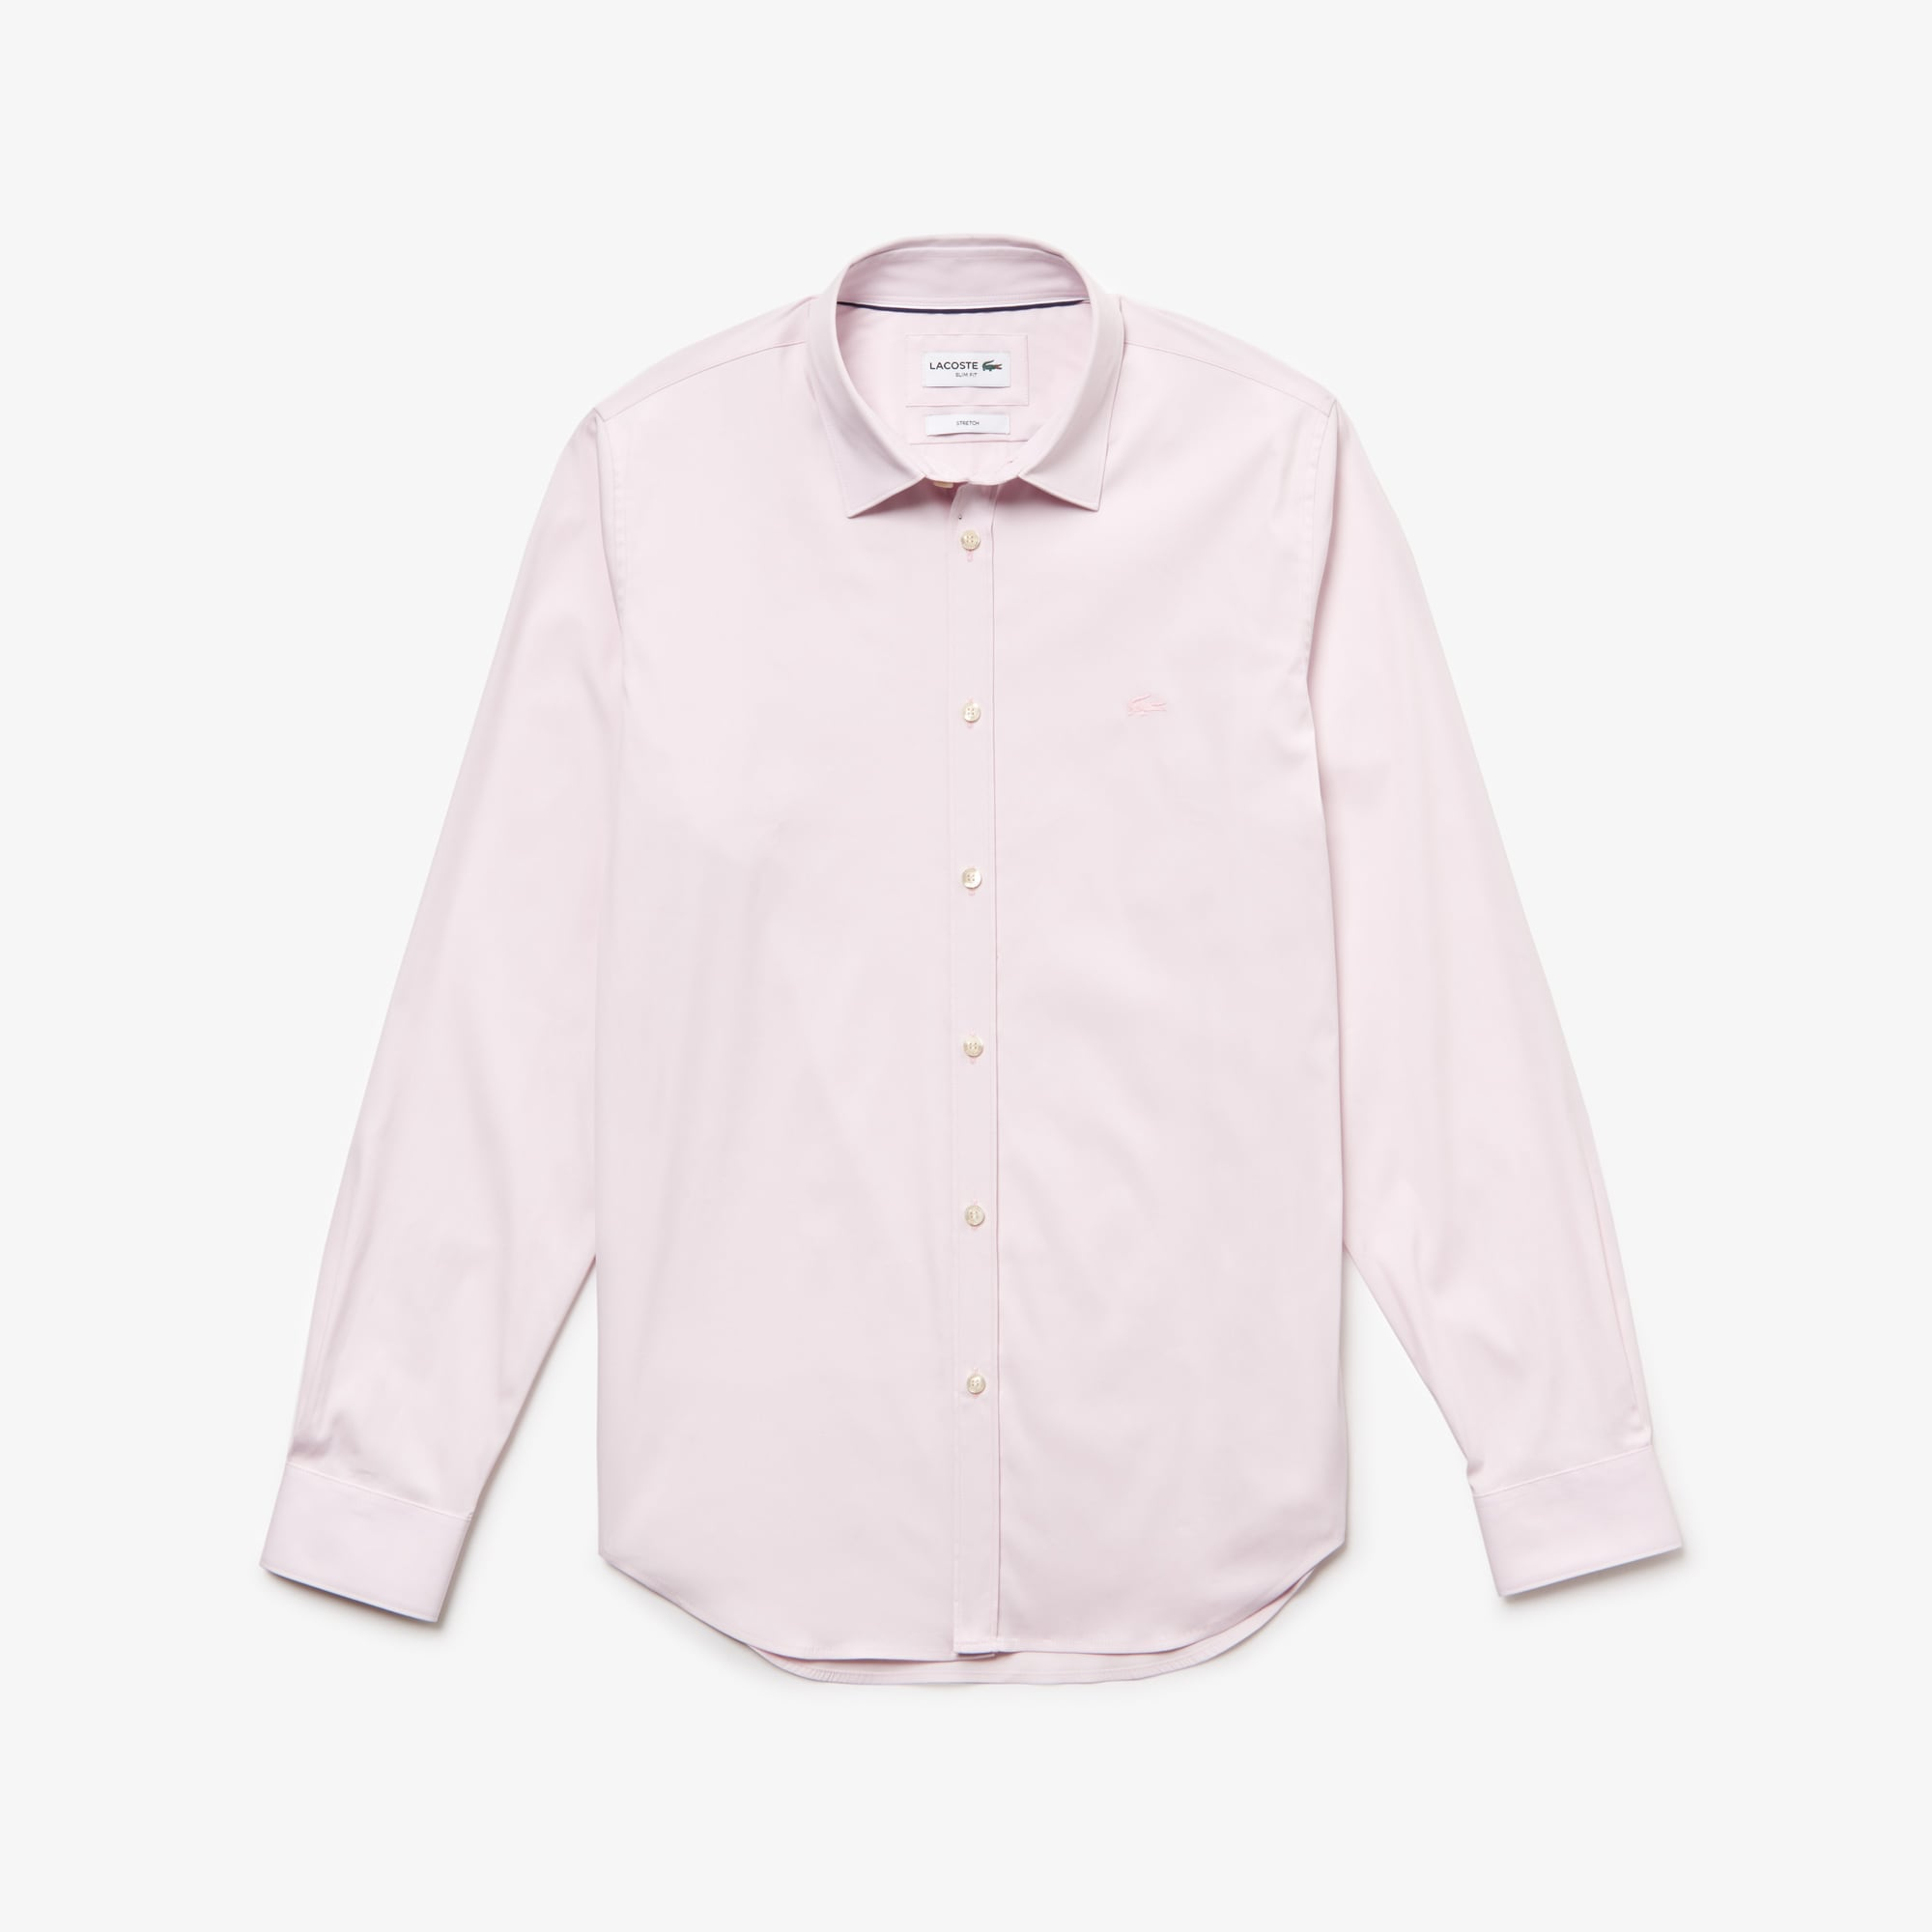 Men's Slim Fit Stretch Cotton Poplin Shirt